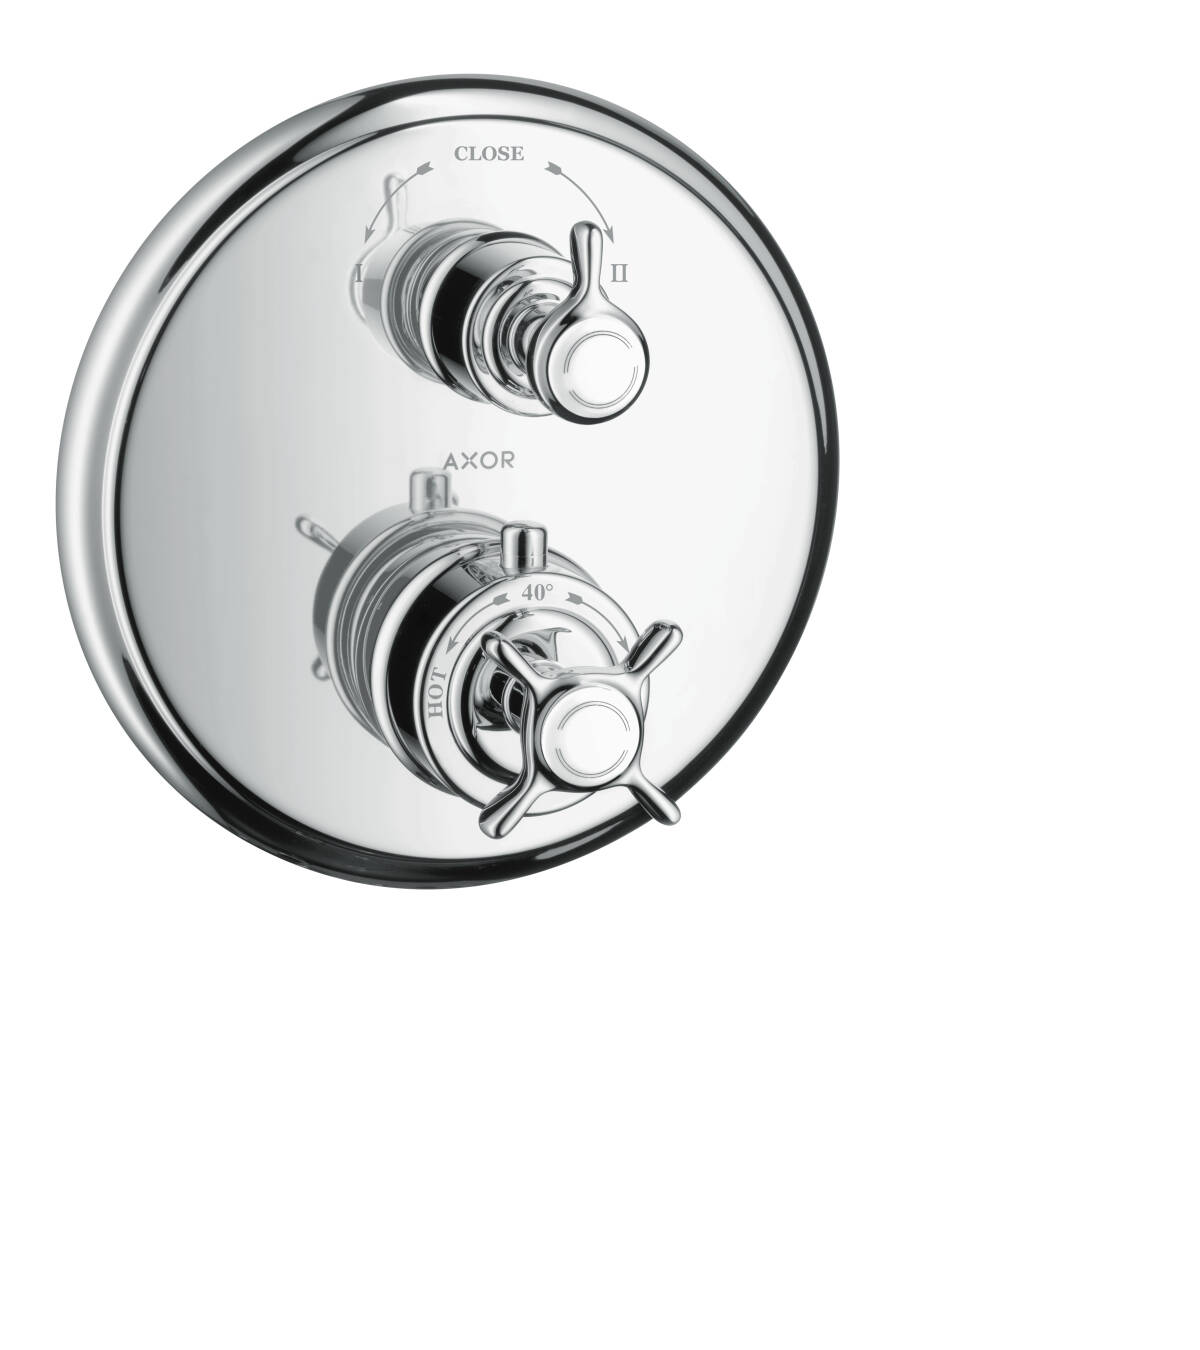 Thermostat for concealed installation with cross handle and shut-off/ diverter valve, Chrome, 16820000